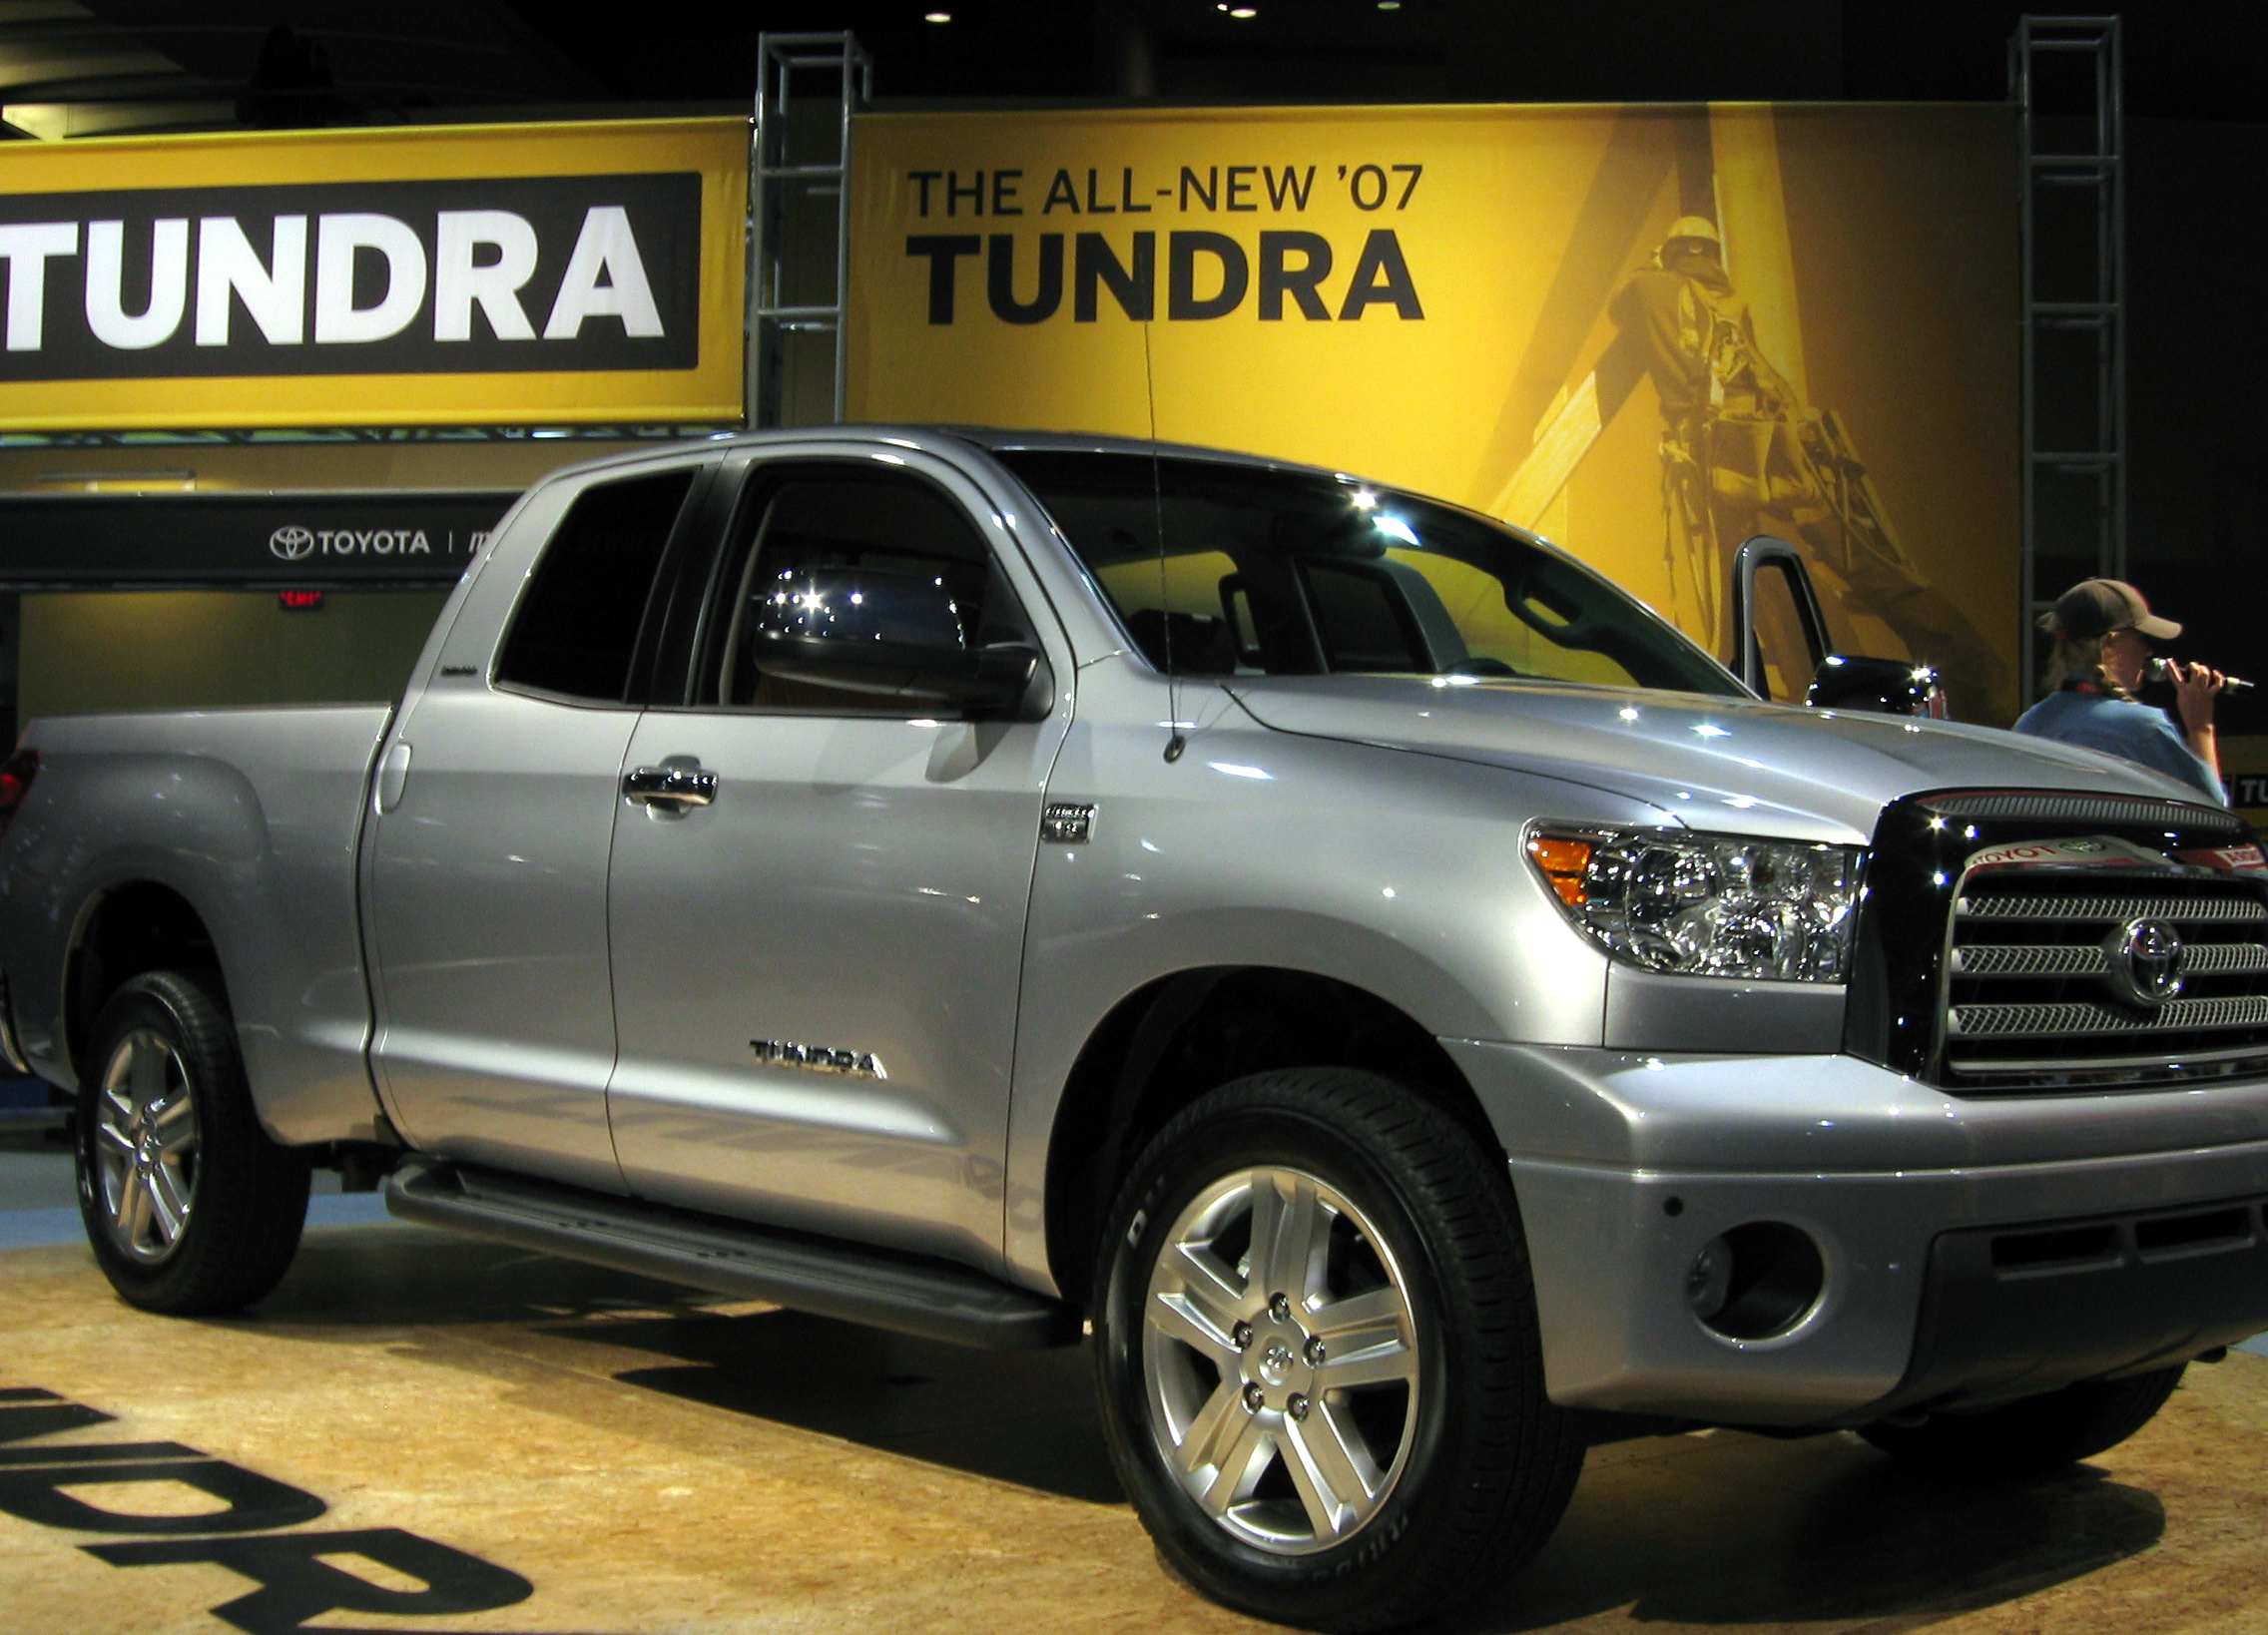 2007 toyota tundra information and photos momentcar. Black Bedroom Furniture Sets. Home Design Ideas